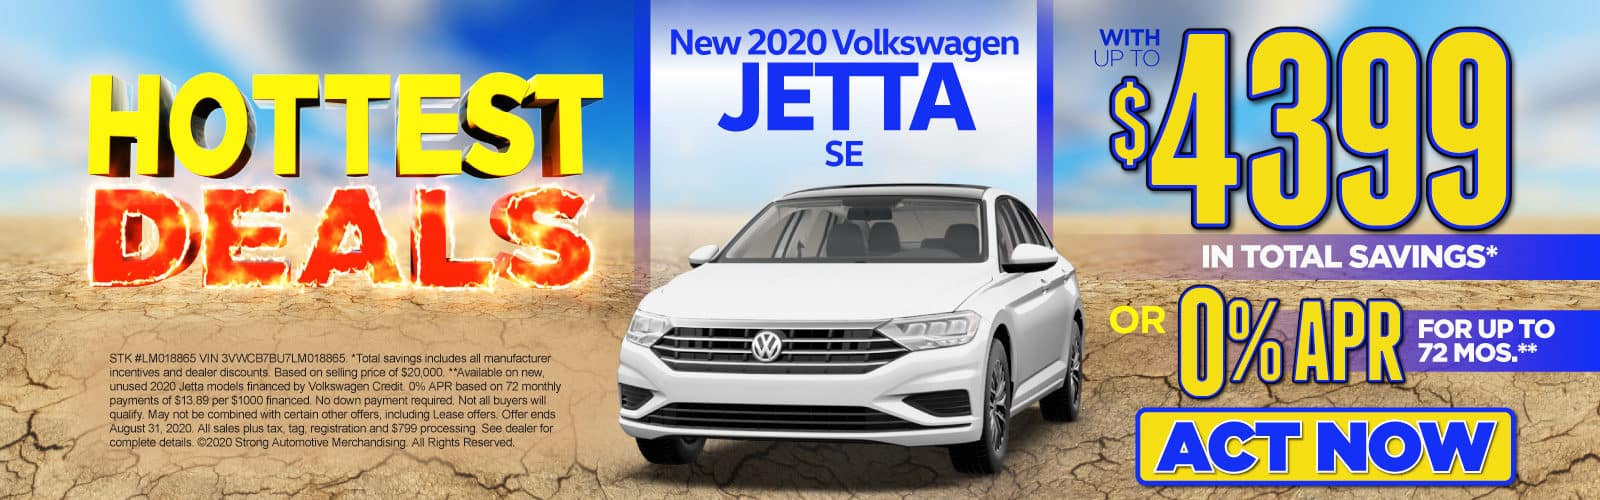 New 2020 VW Jetta - Up to $4399 in total savings - Act Now